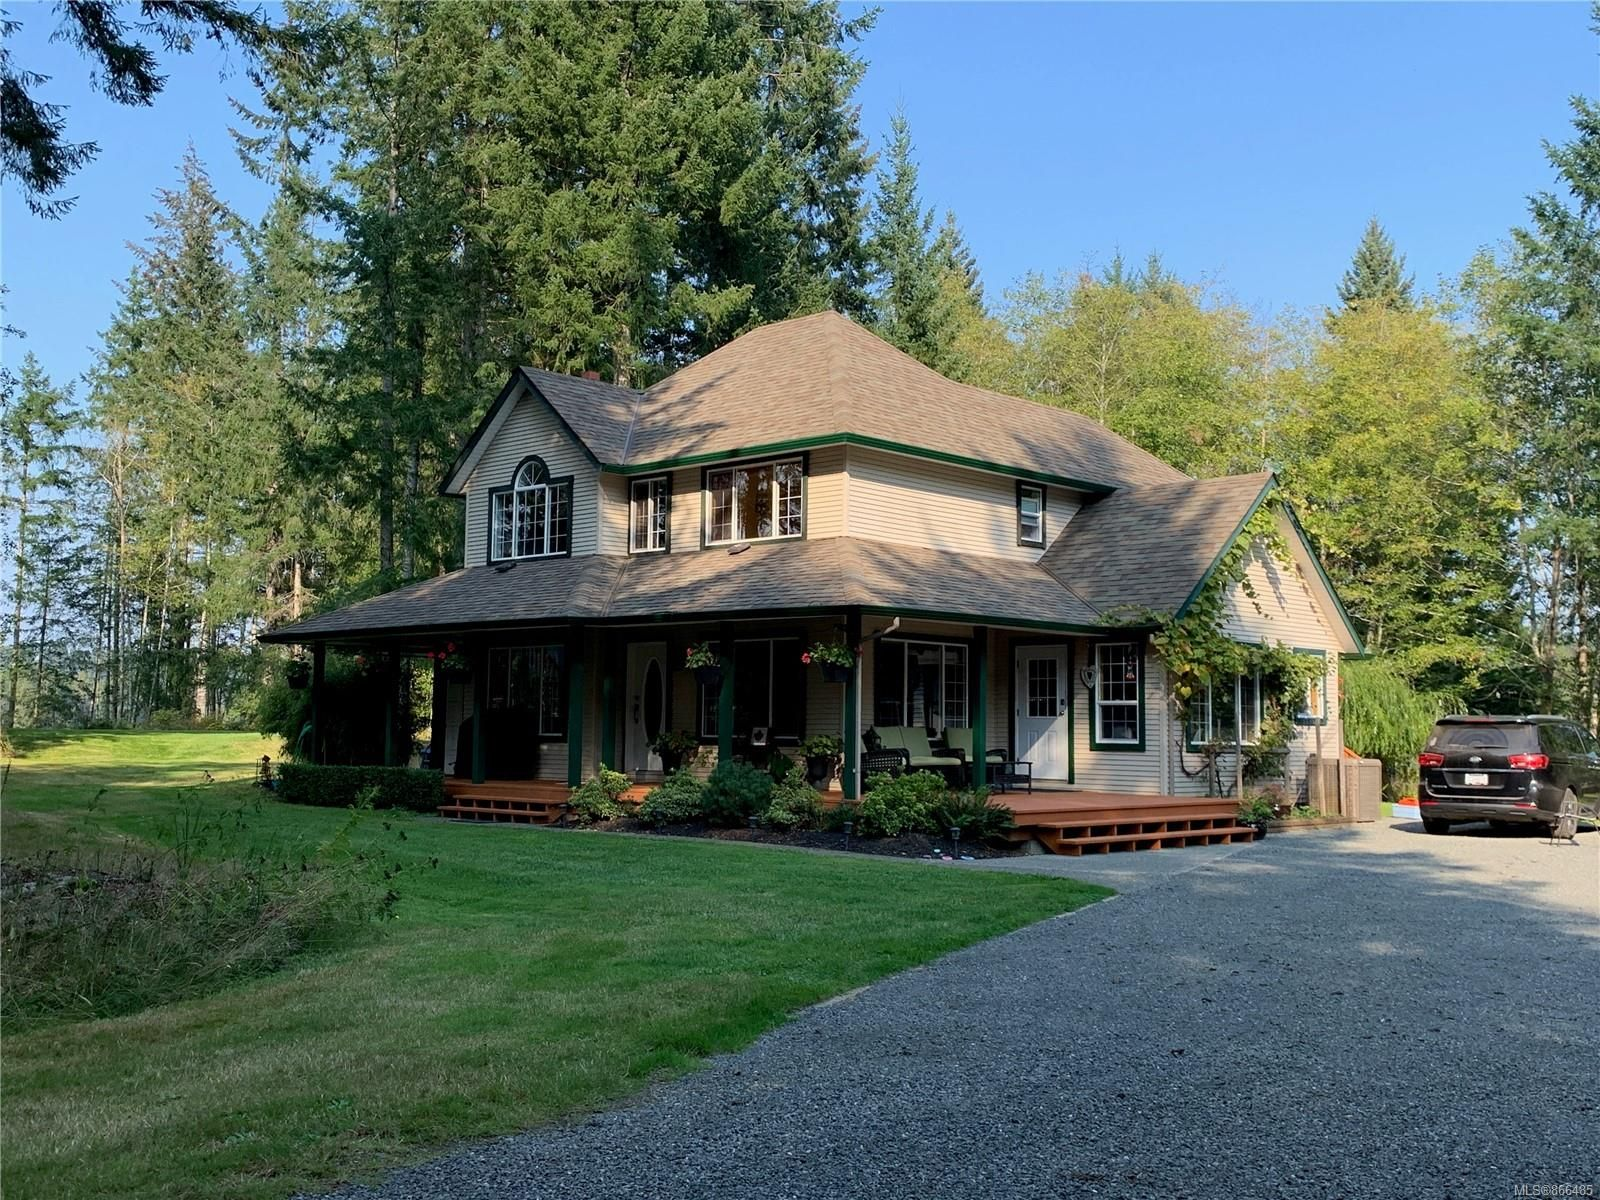 Main Photo: 7006 Sprout Rd in : CV Courtenay North House for sale (Comox Valley)  : MLS®# 866485